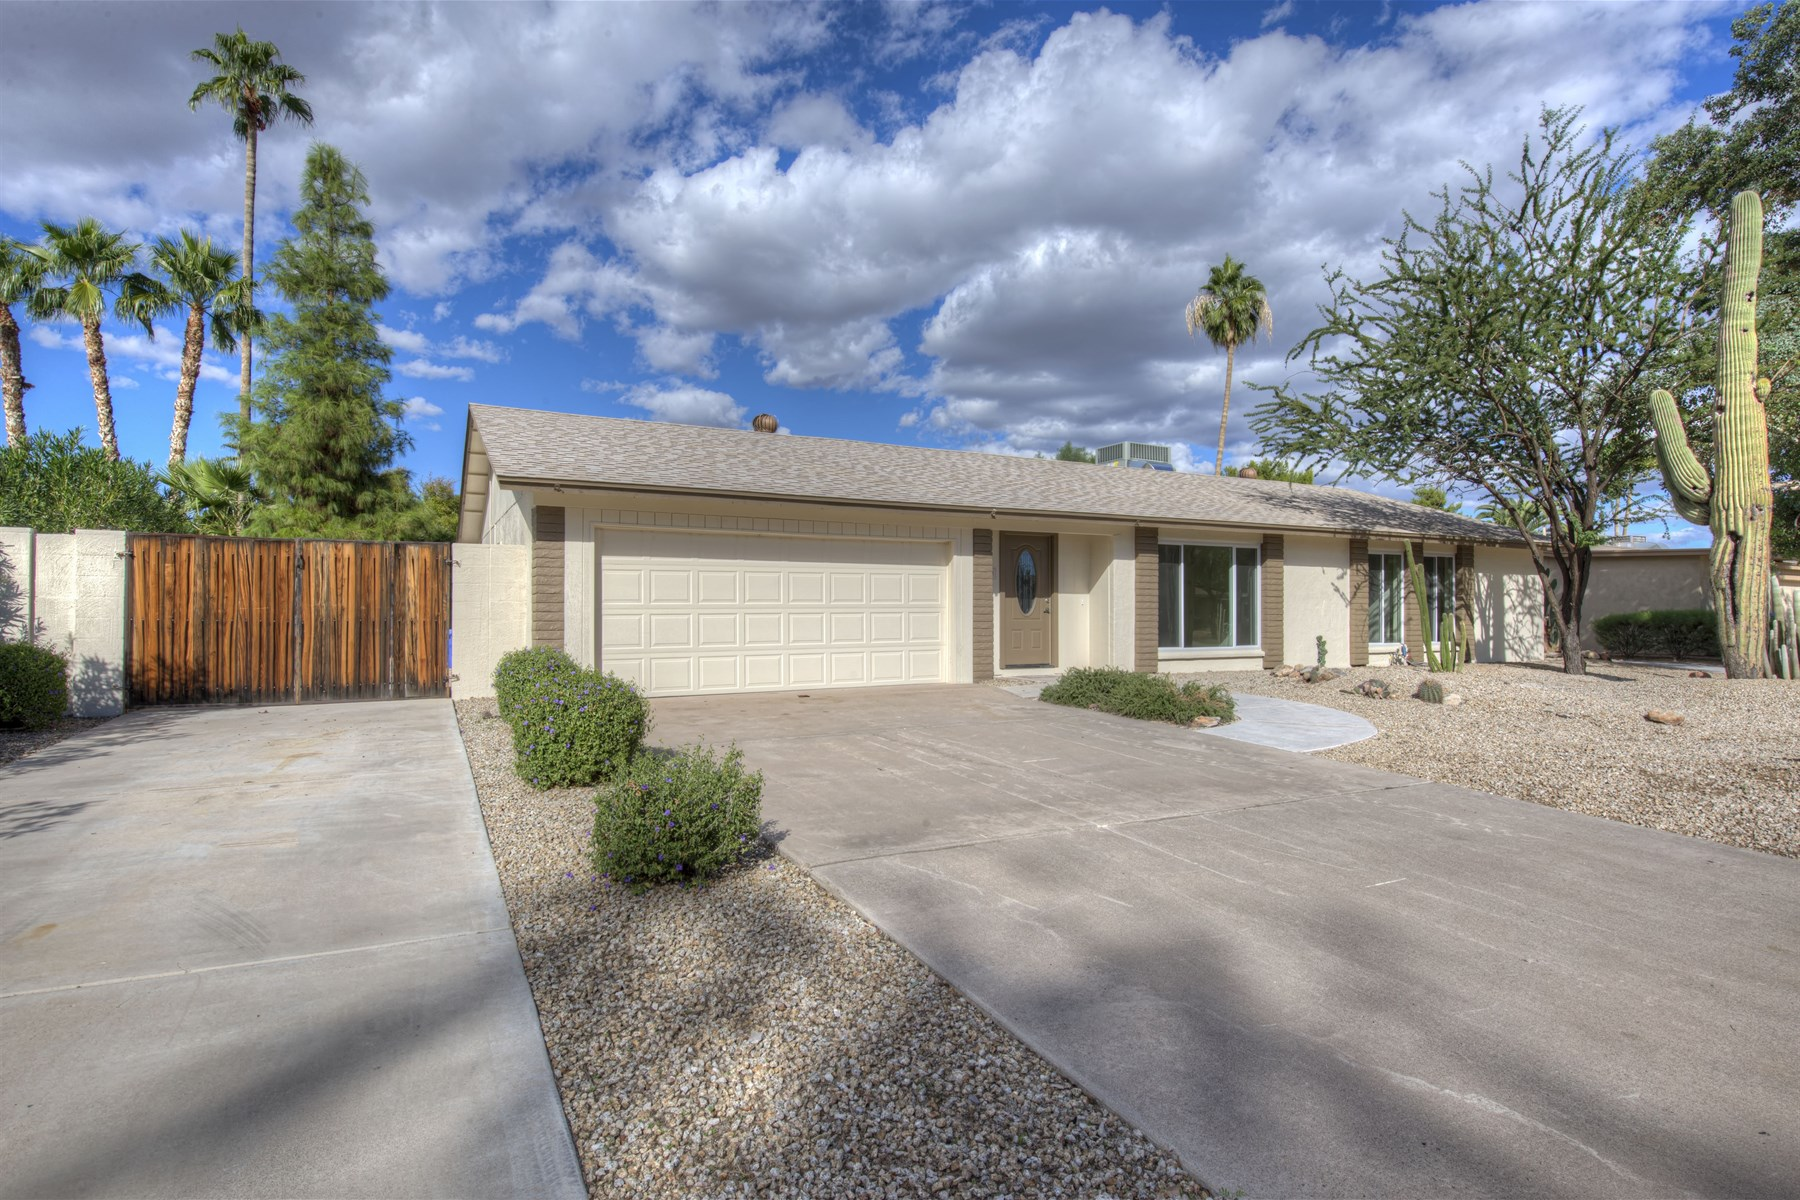 Single Family Home for Sale at Exquisitely and tastefully remodeled home in Tami Estates 5120 E Poinsettia Dr Scottsdale, Arizona 85254 United States